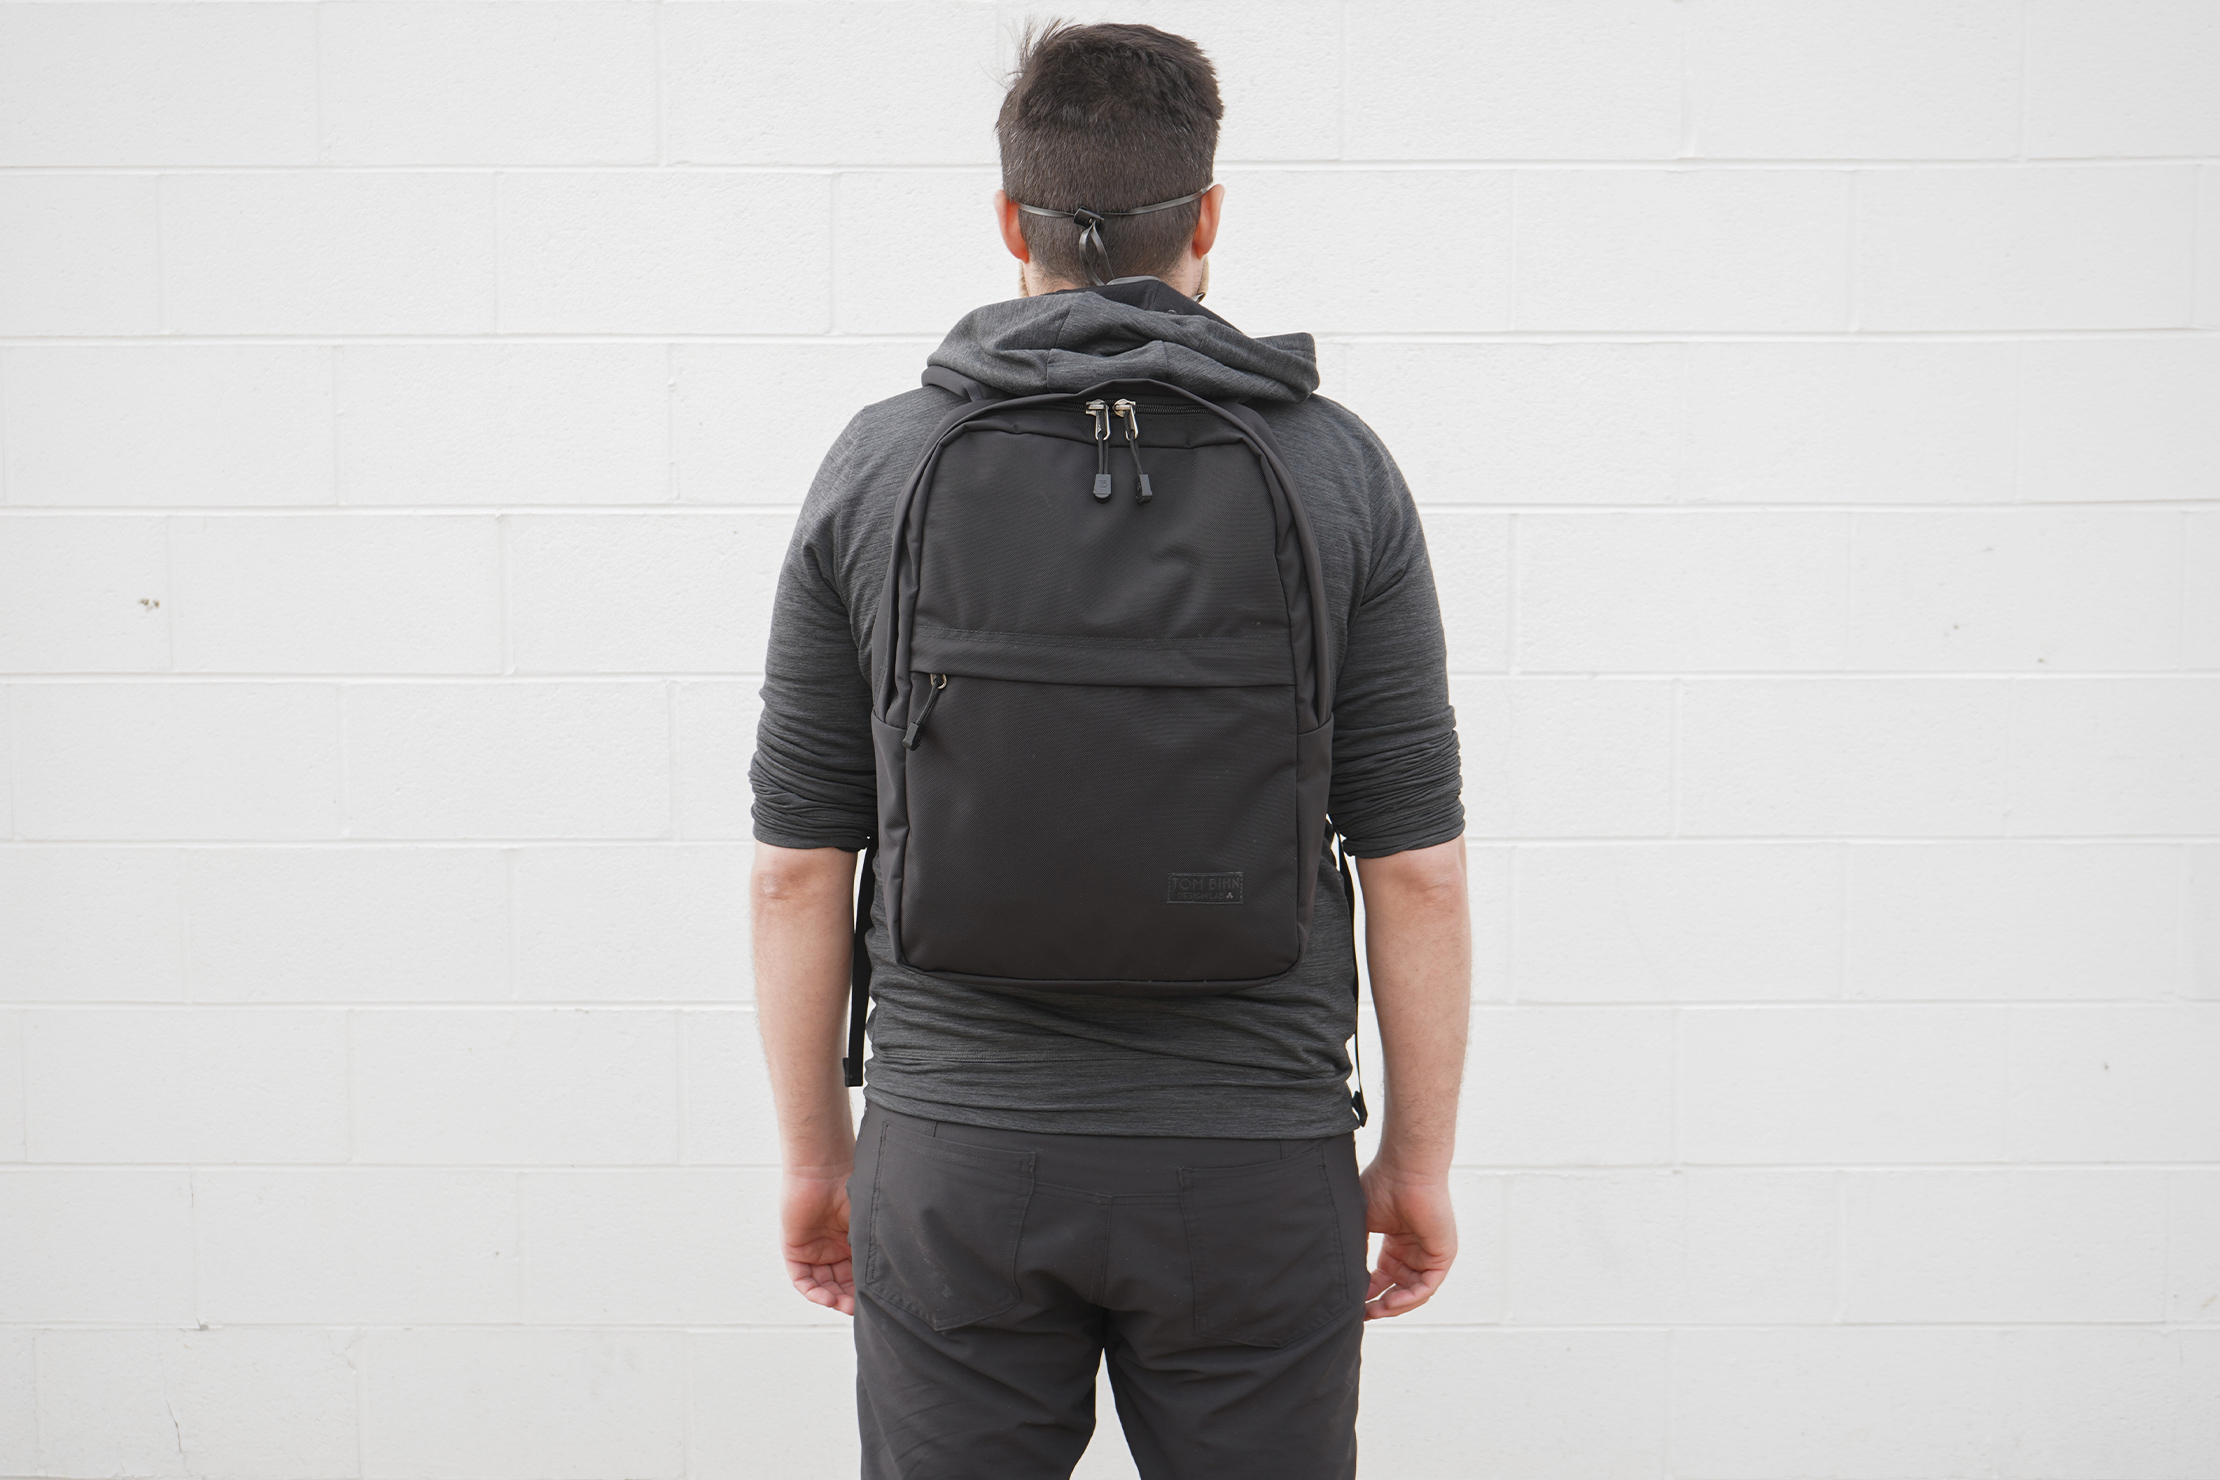 Tom Bihn Paragon Backpack | Carrying the backpack to work